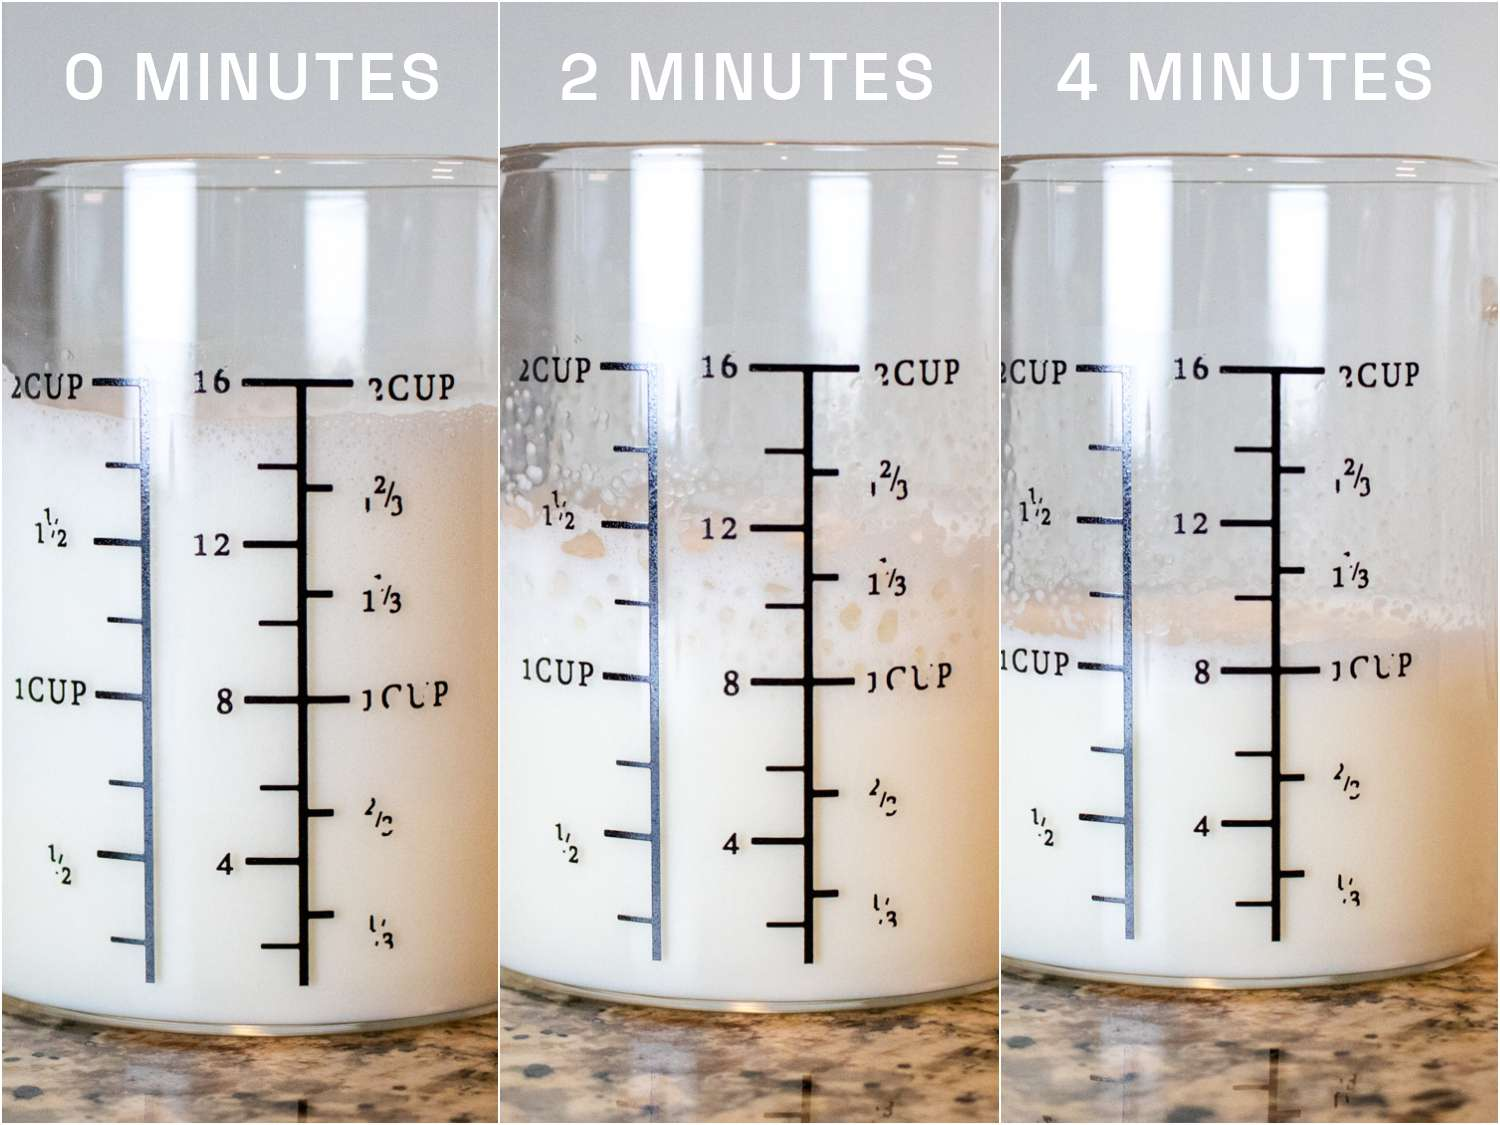 Golde Superwisk milk deflation at 0, 2, and 4 minutes